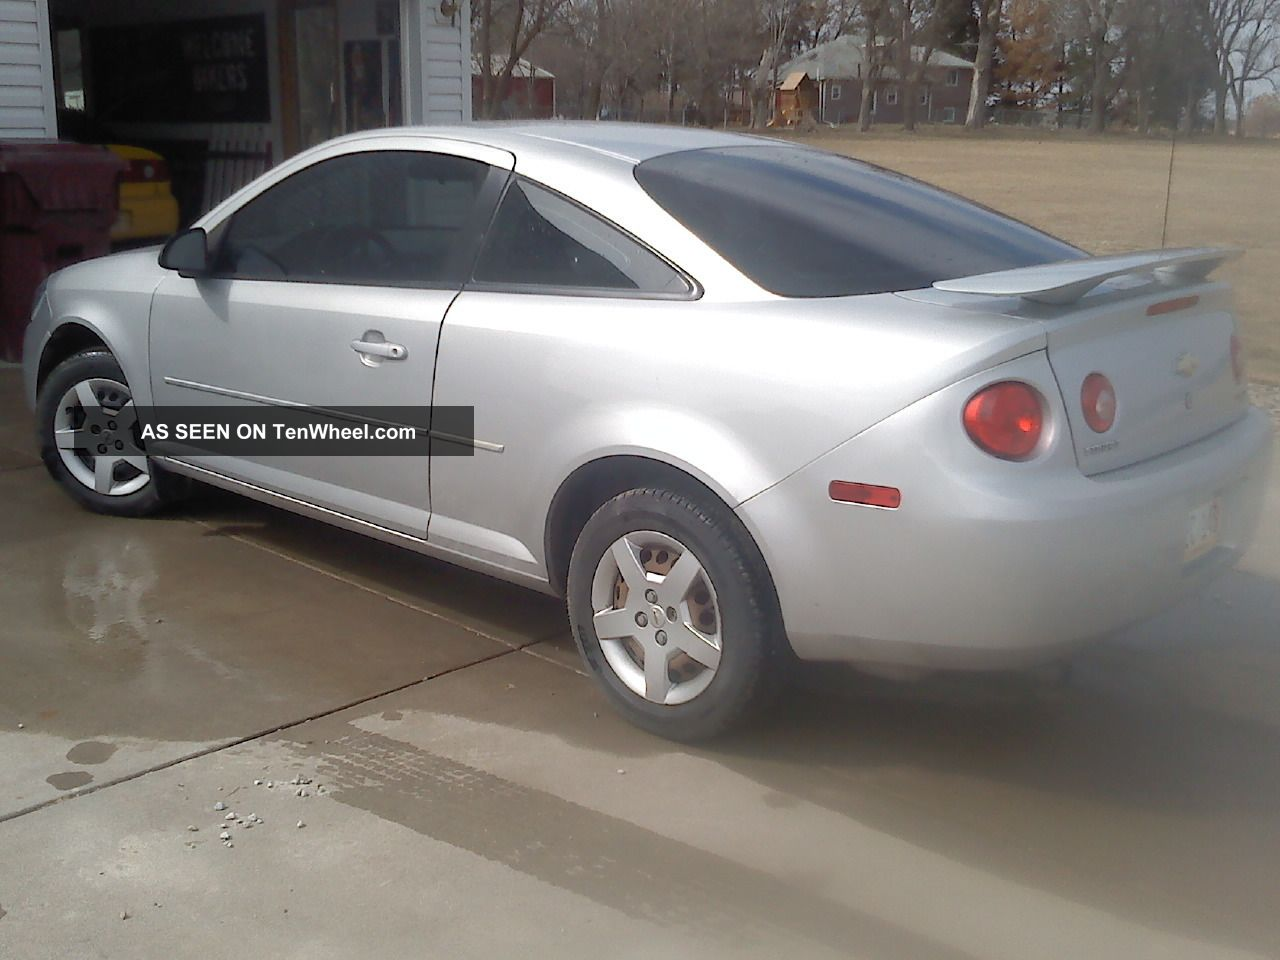 Cobalt 2006 chevy cobalt silver 2005 Chevrolet Cobalt coupe – pictures, information and specs ...